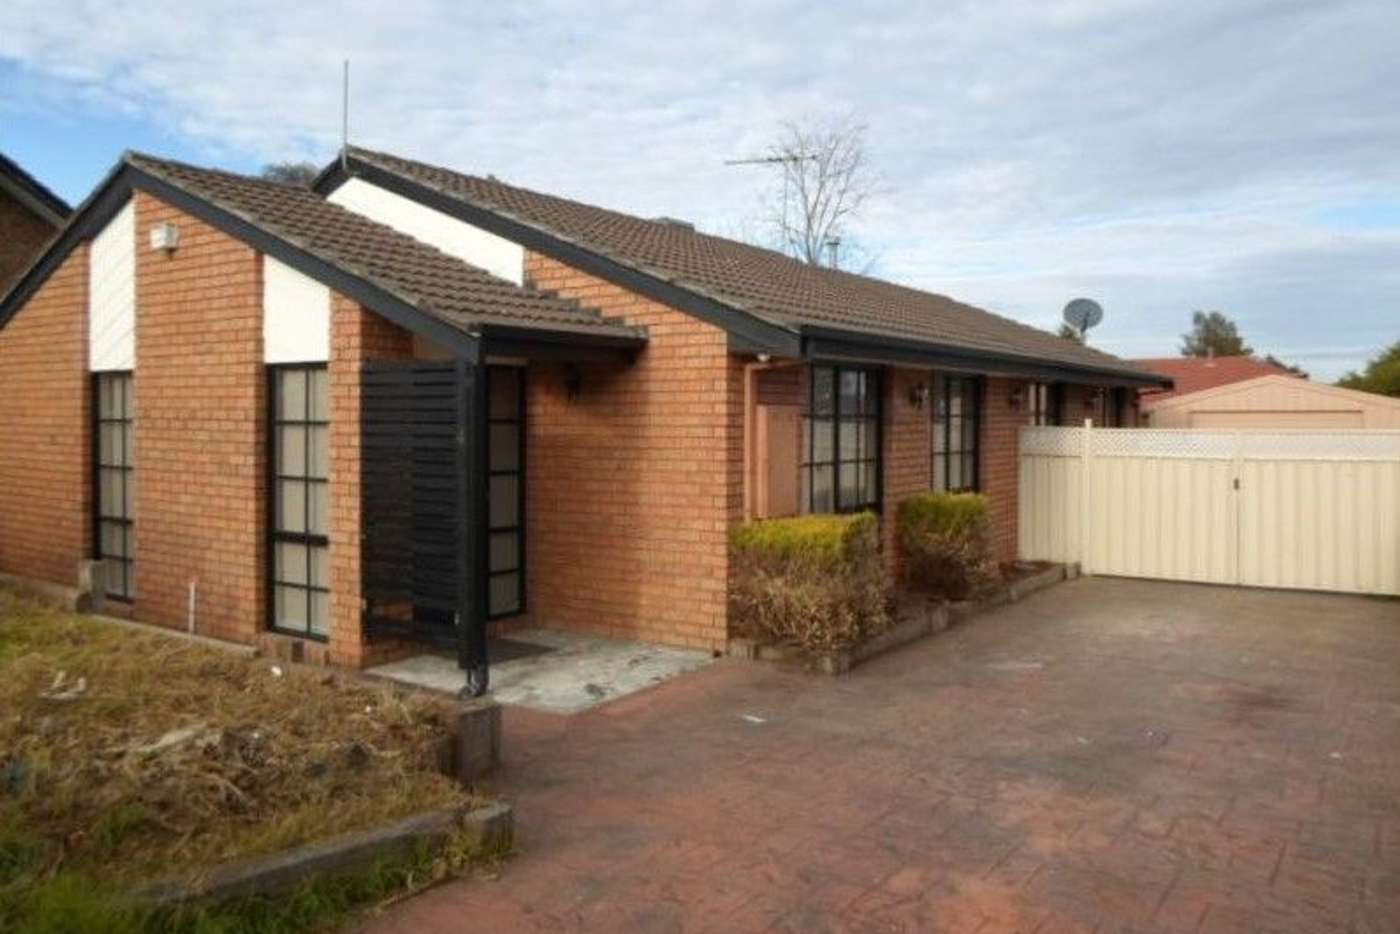 Main view of Homely house listing, 4 Weemala Court, Meadow Heights VIC 3048